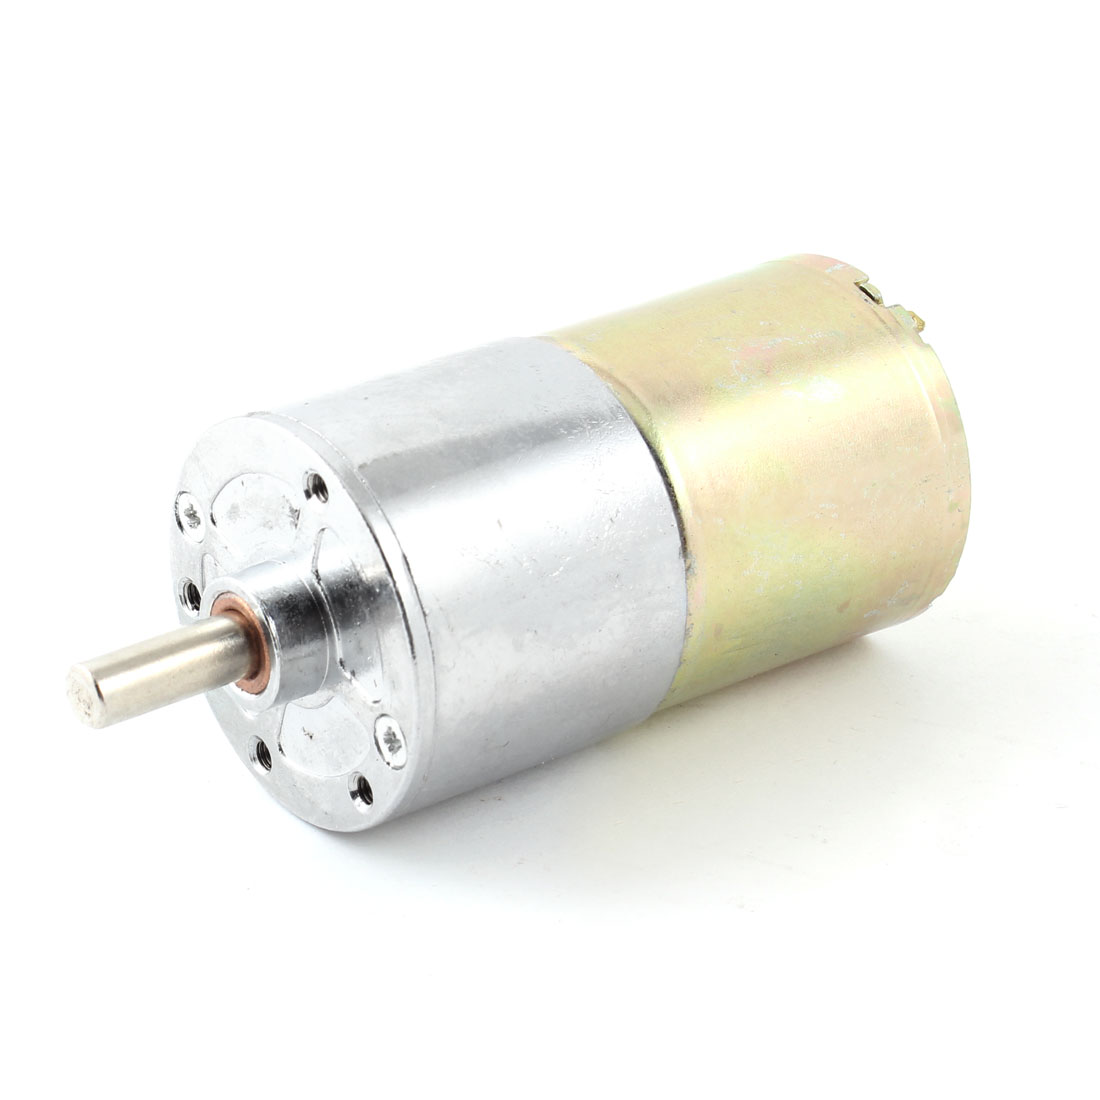 DC 24V 10RPM 6mm Shank Diameter High Torque Gear Motor